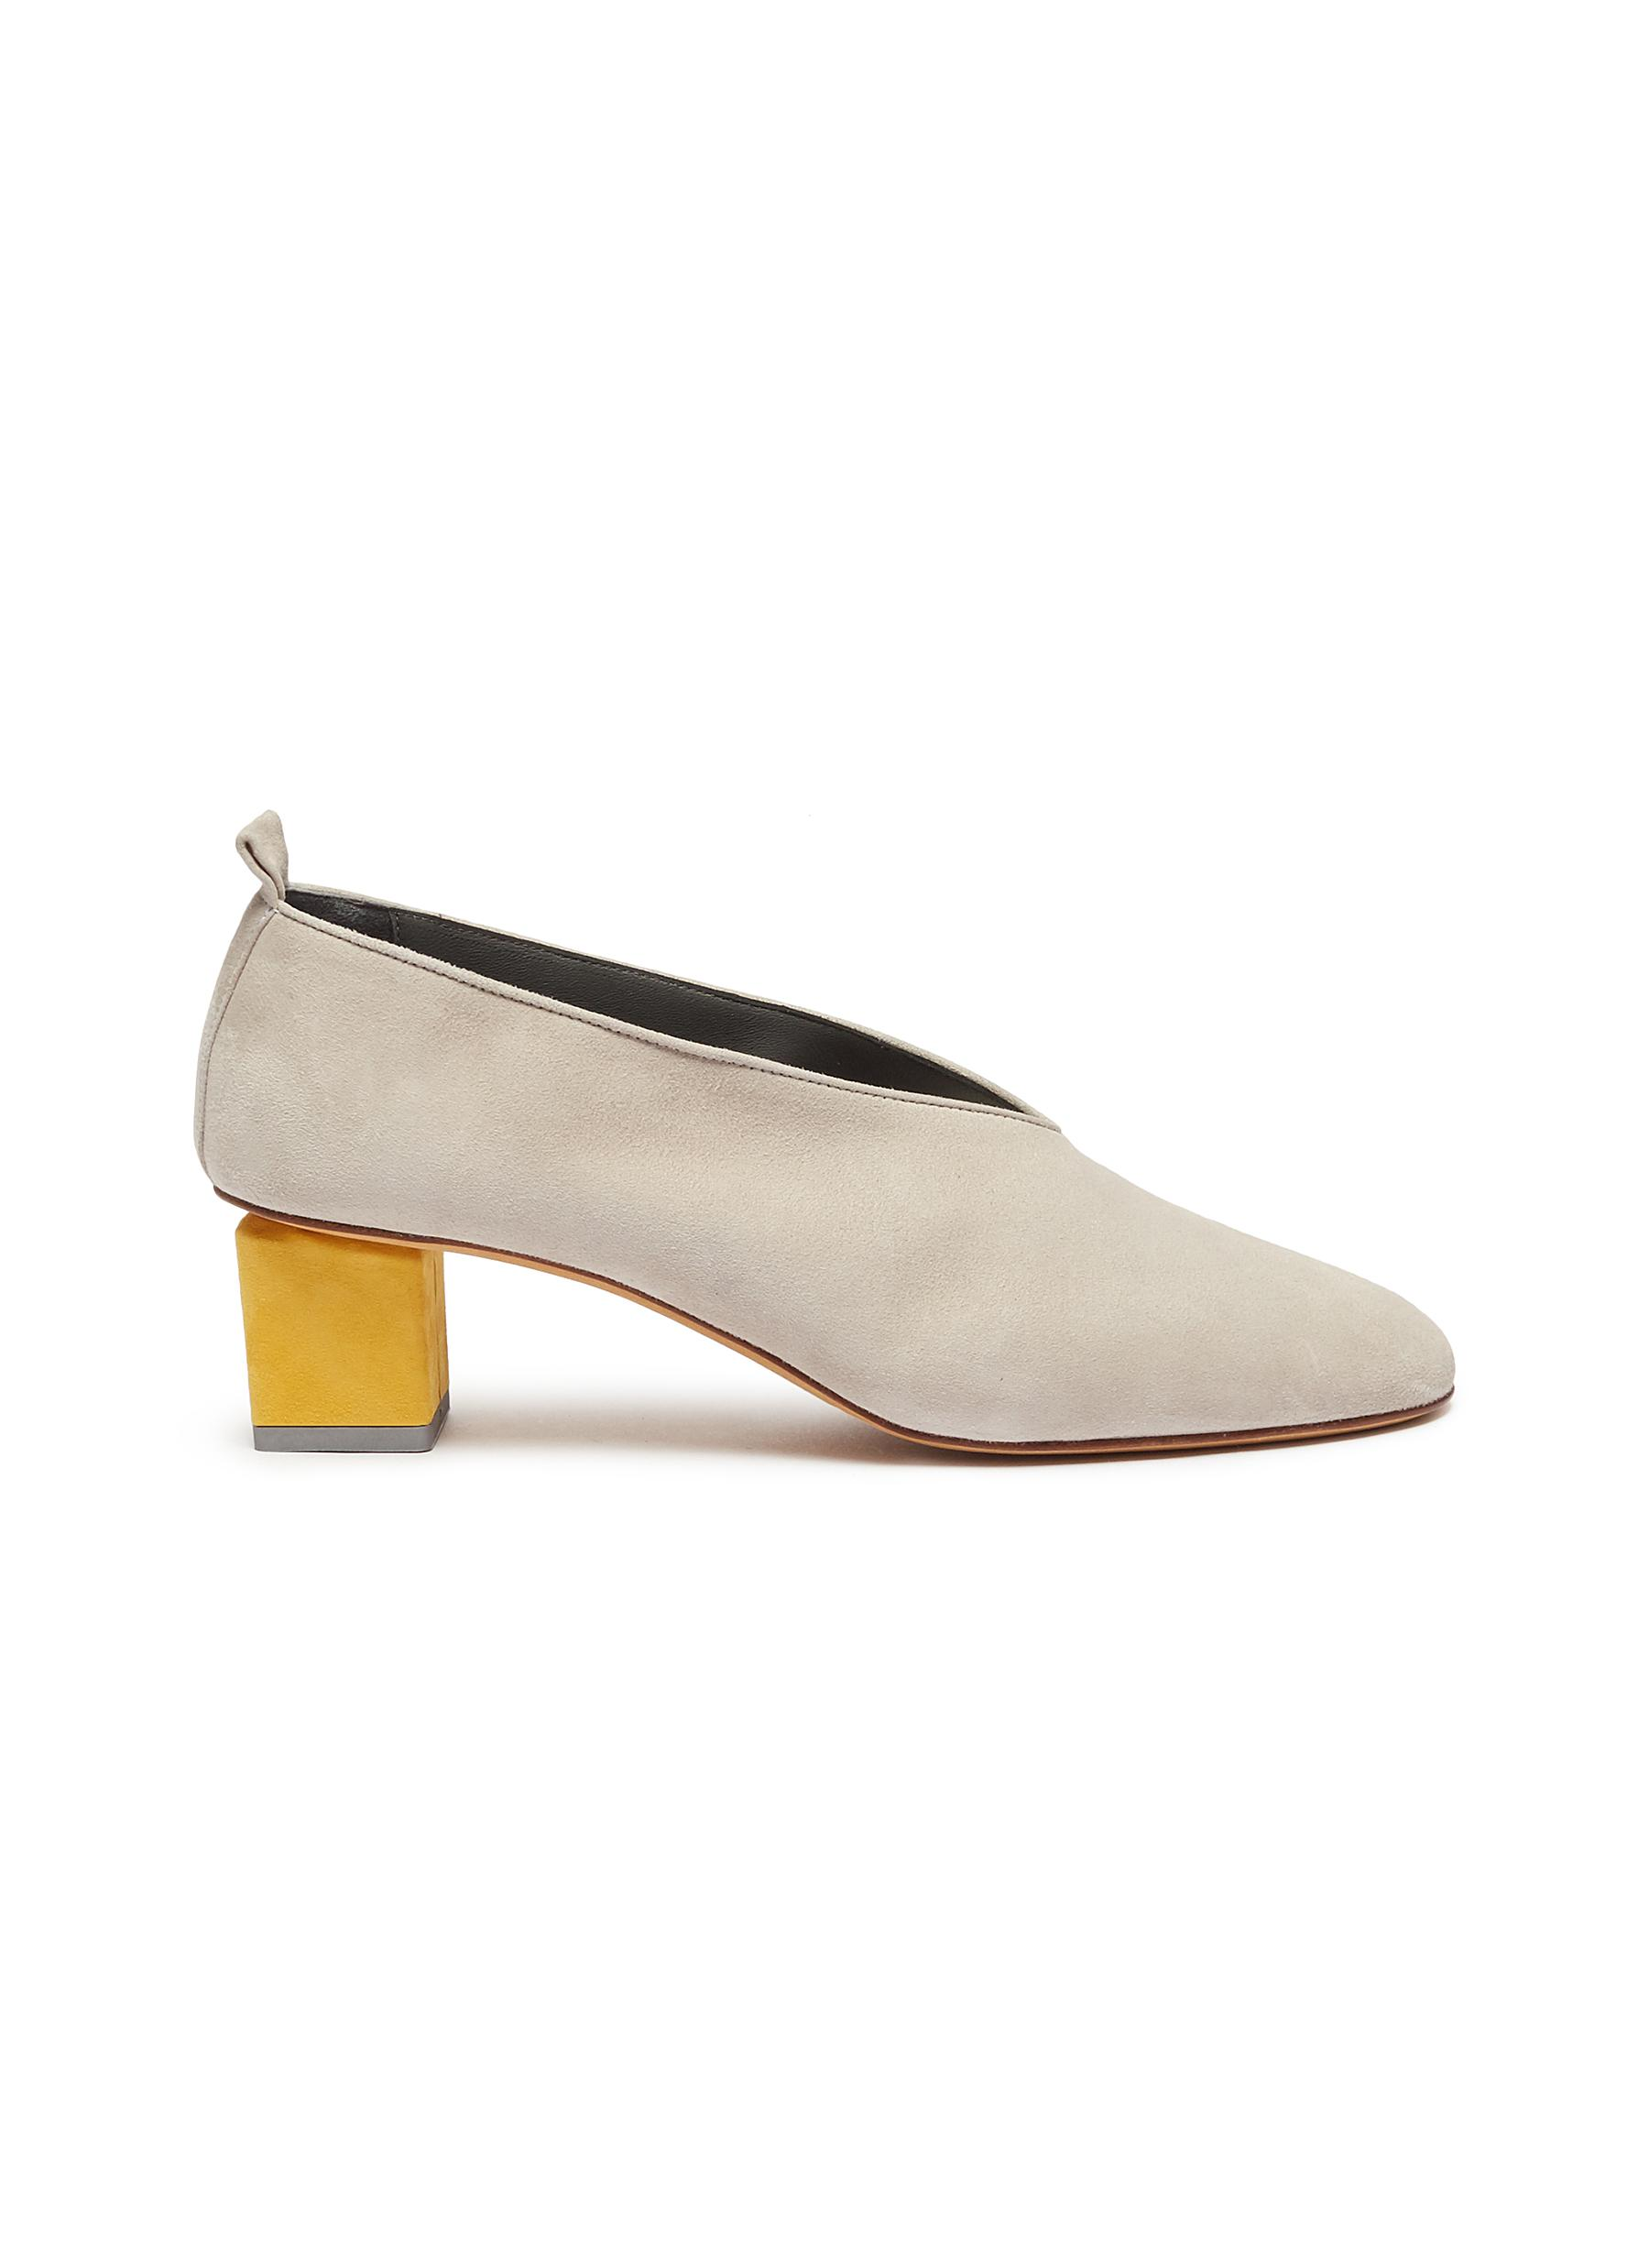 Mildred geometric heel choked-up suede pumps by Gray Matters